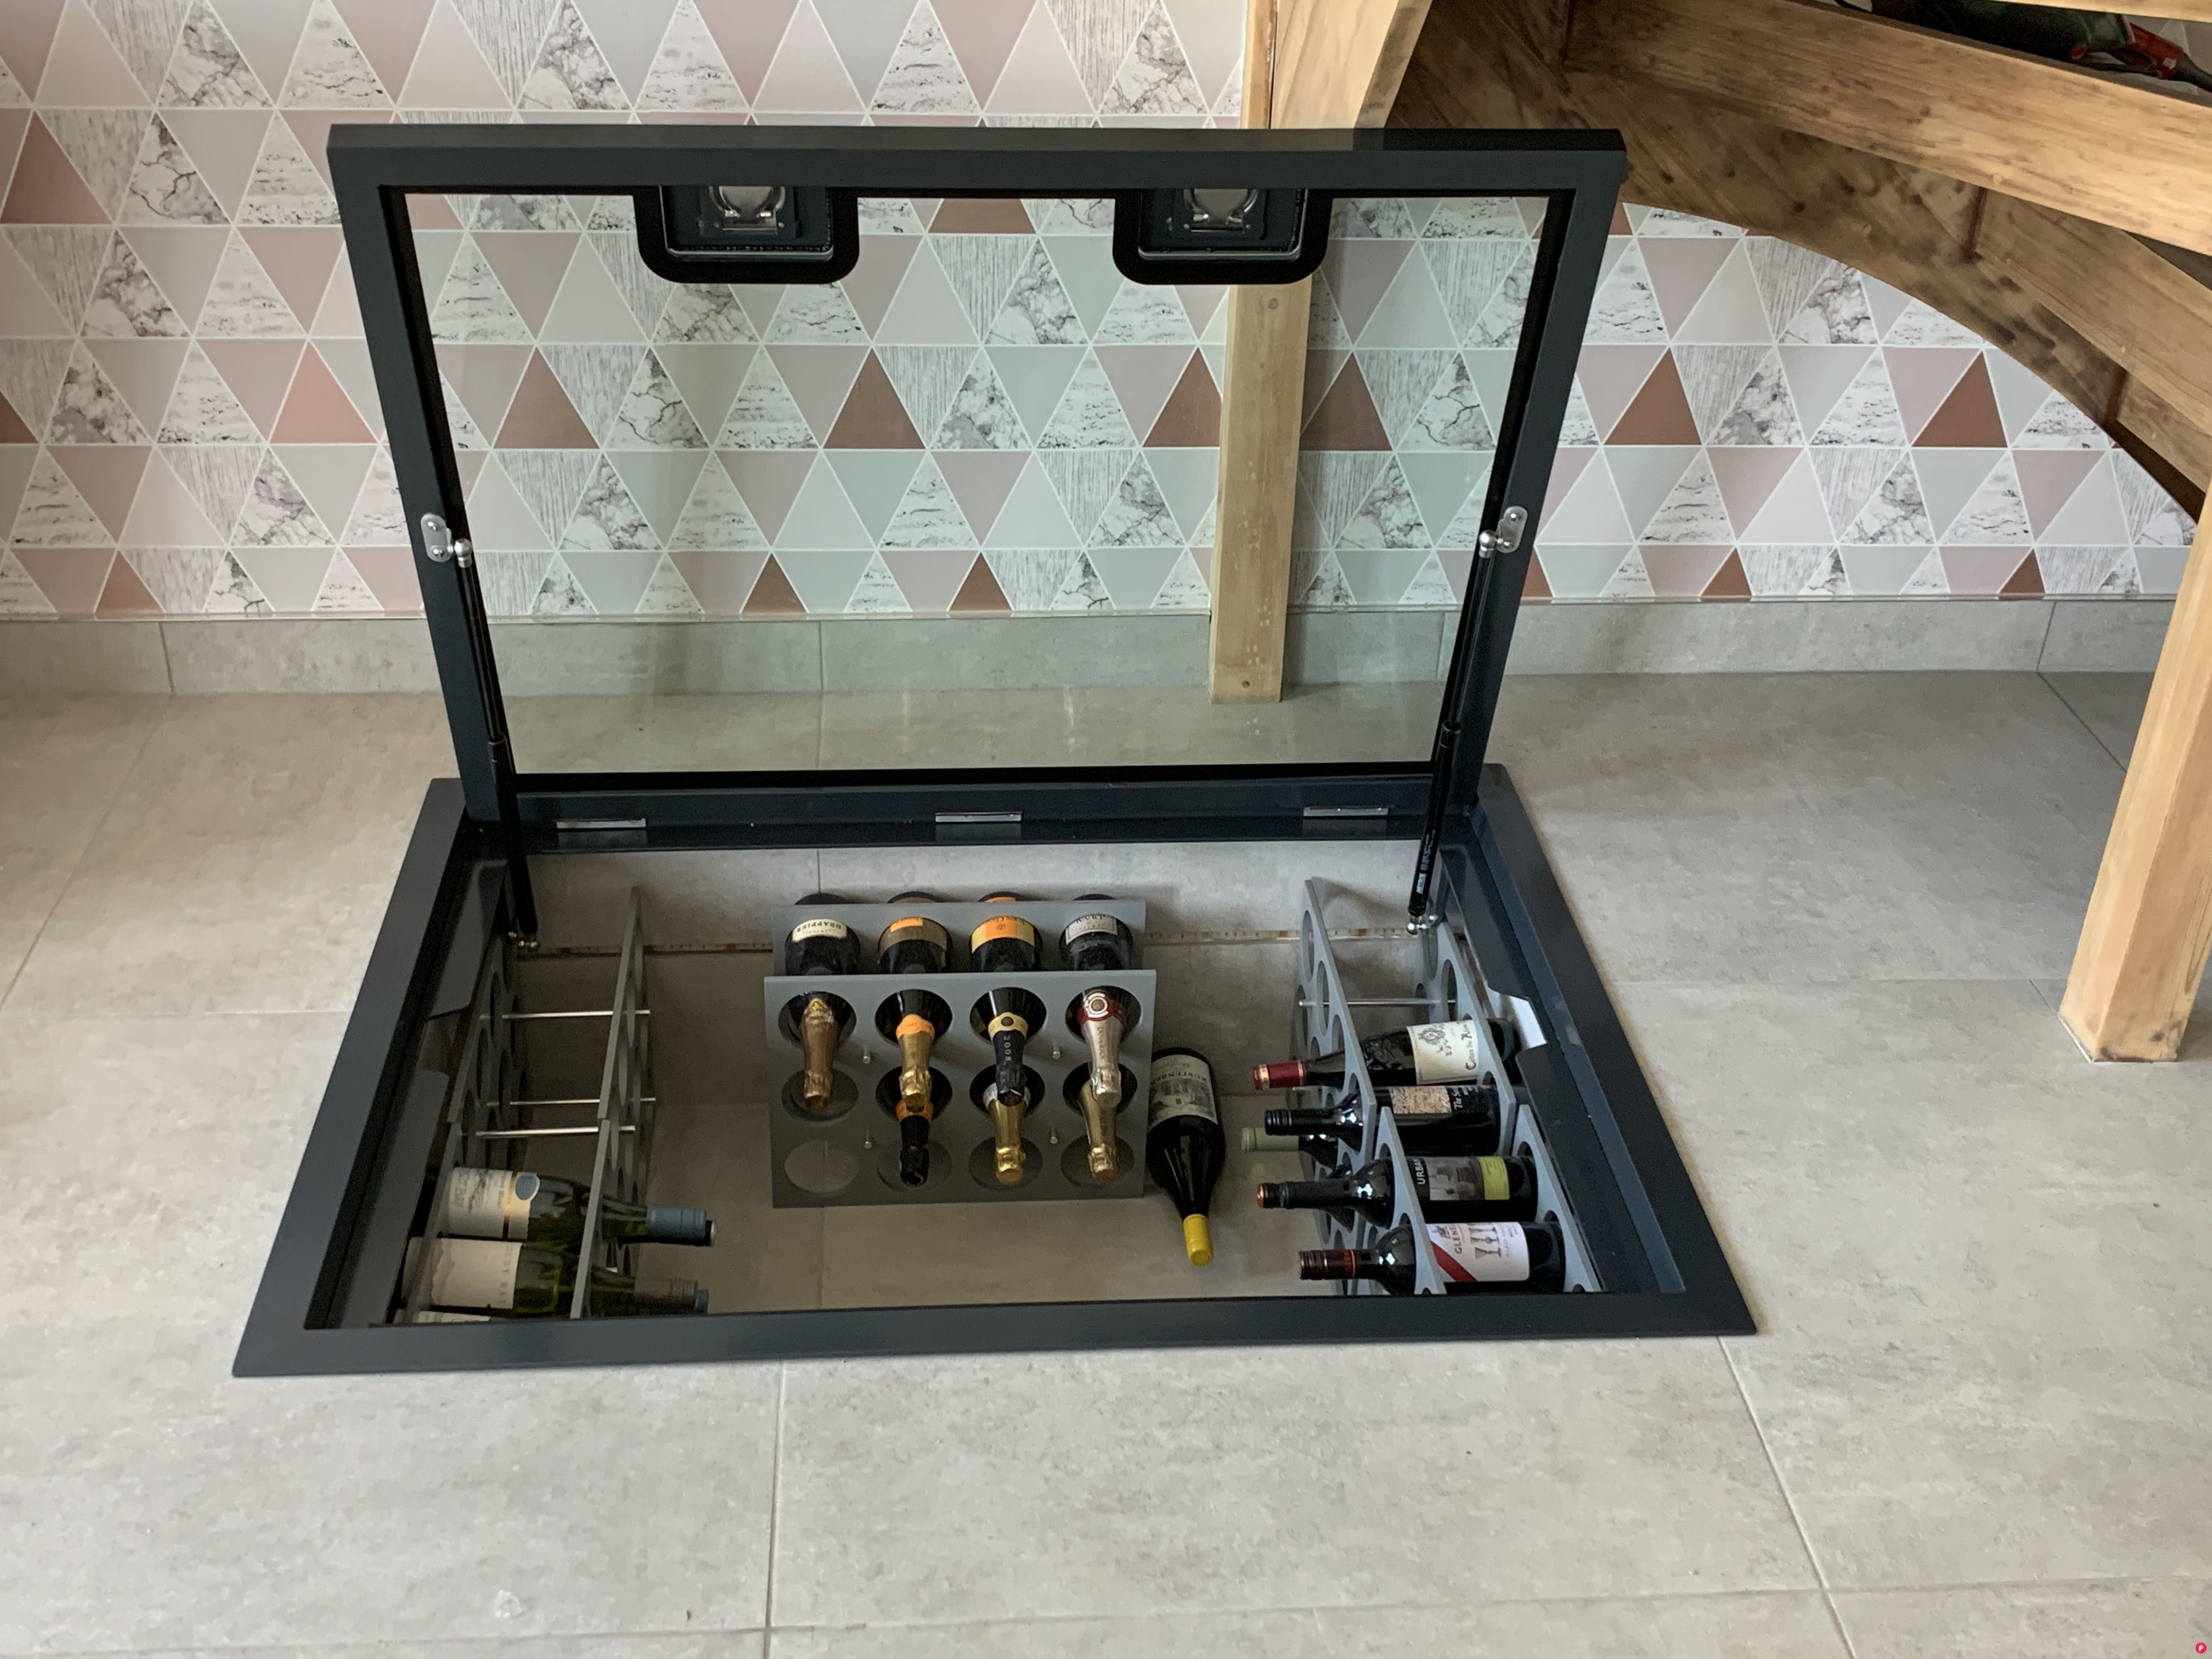 Omg Our Favorite New Design Glass Wine Cellar With Walk On Glass Flooring And Gas Strut Opening Hinged System Glass Floor Home Wine Cellars Glass Wine Cellar